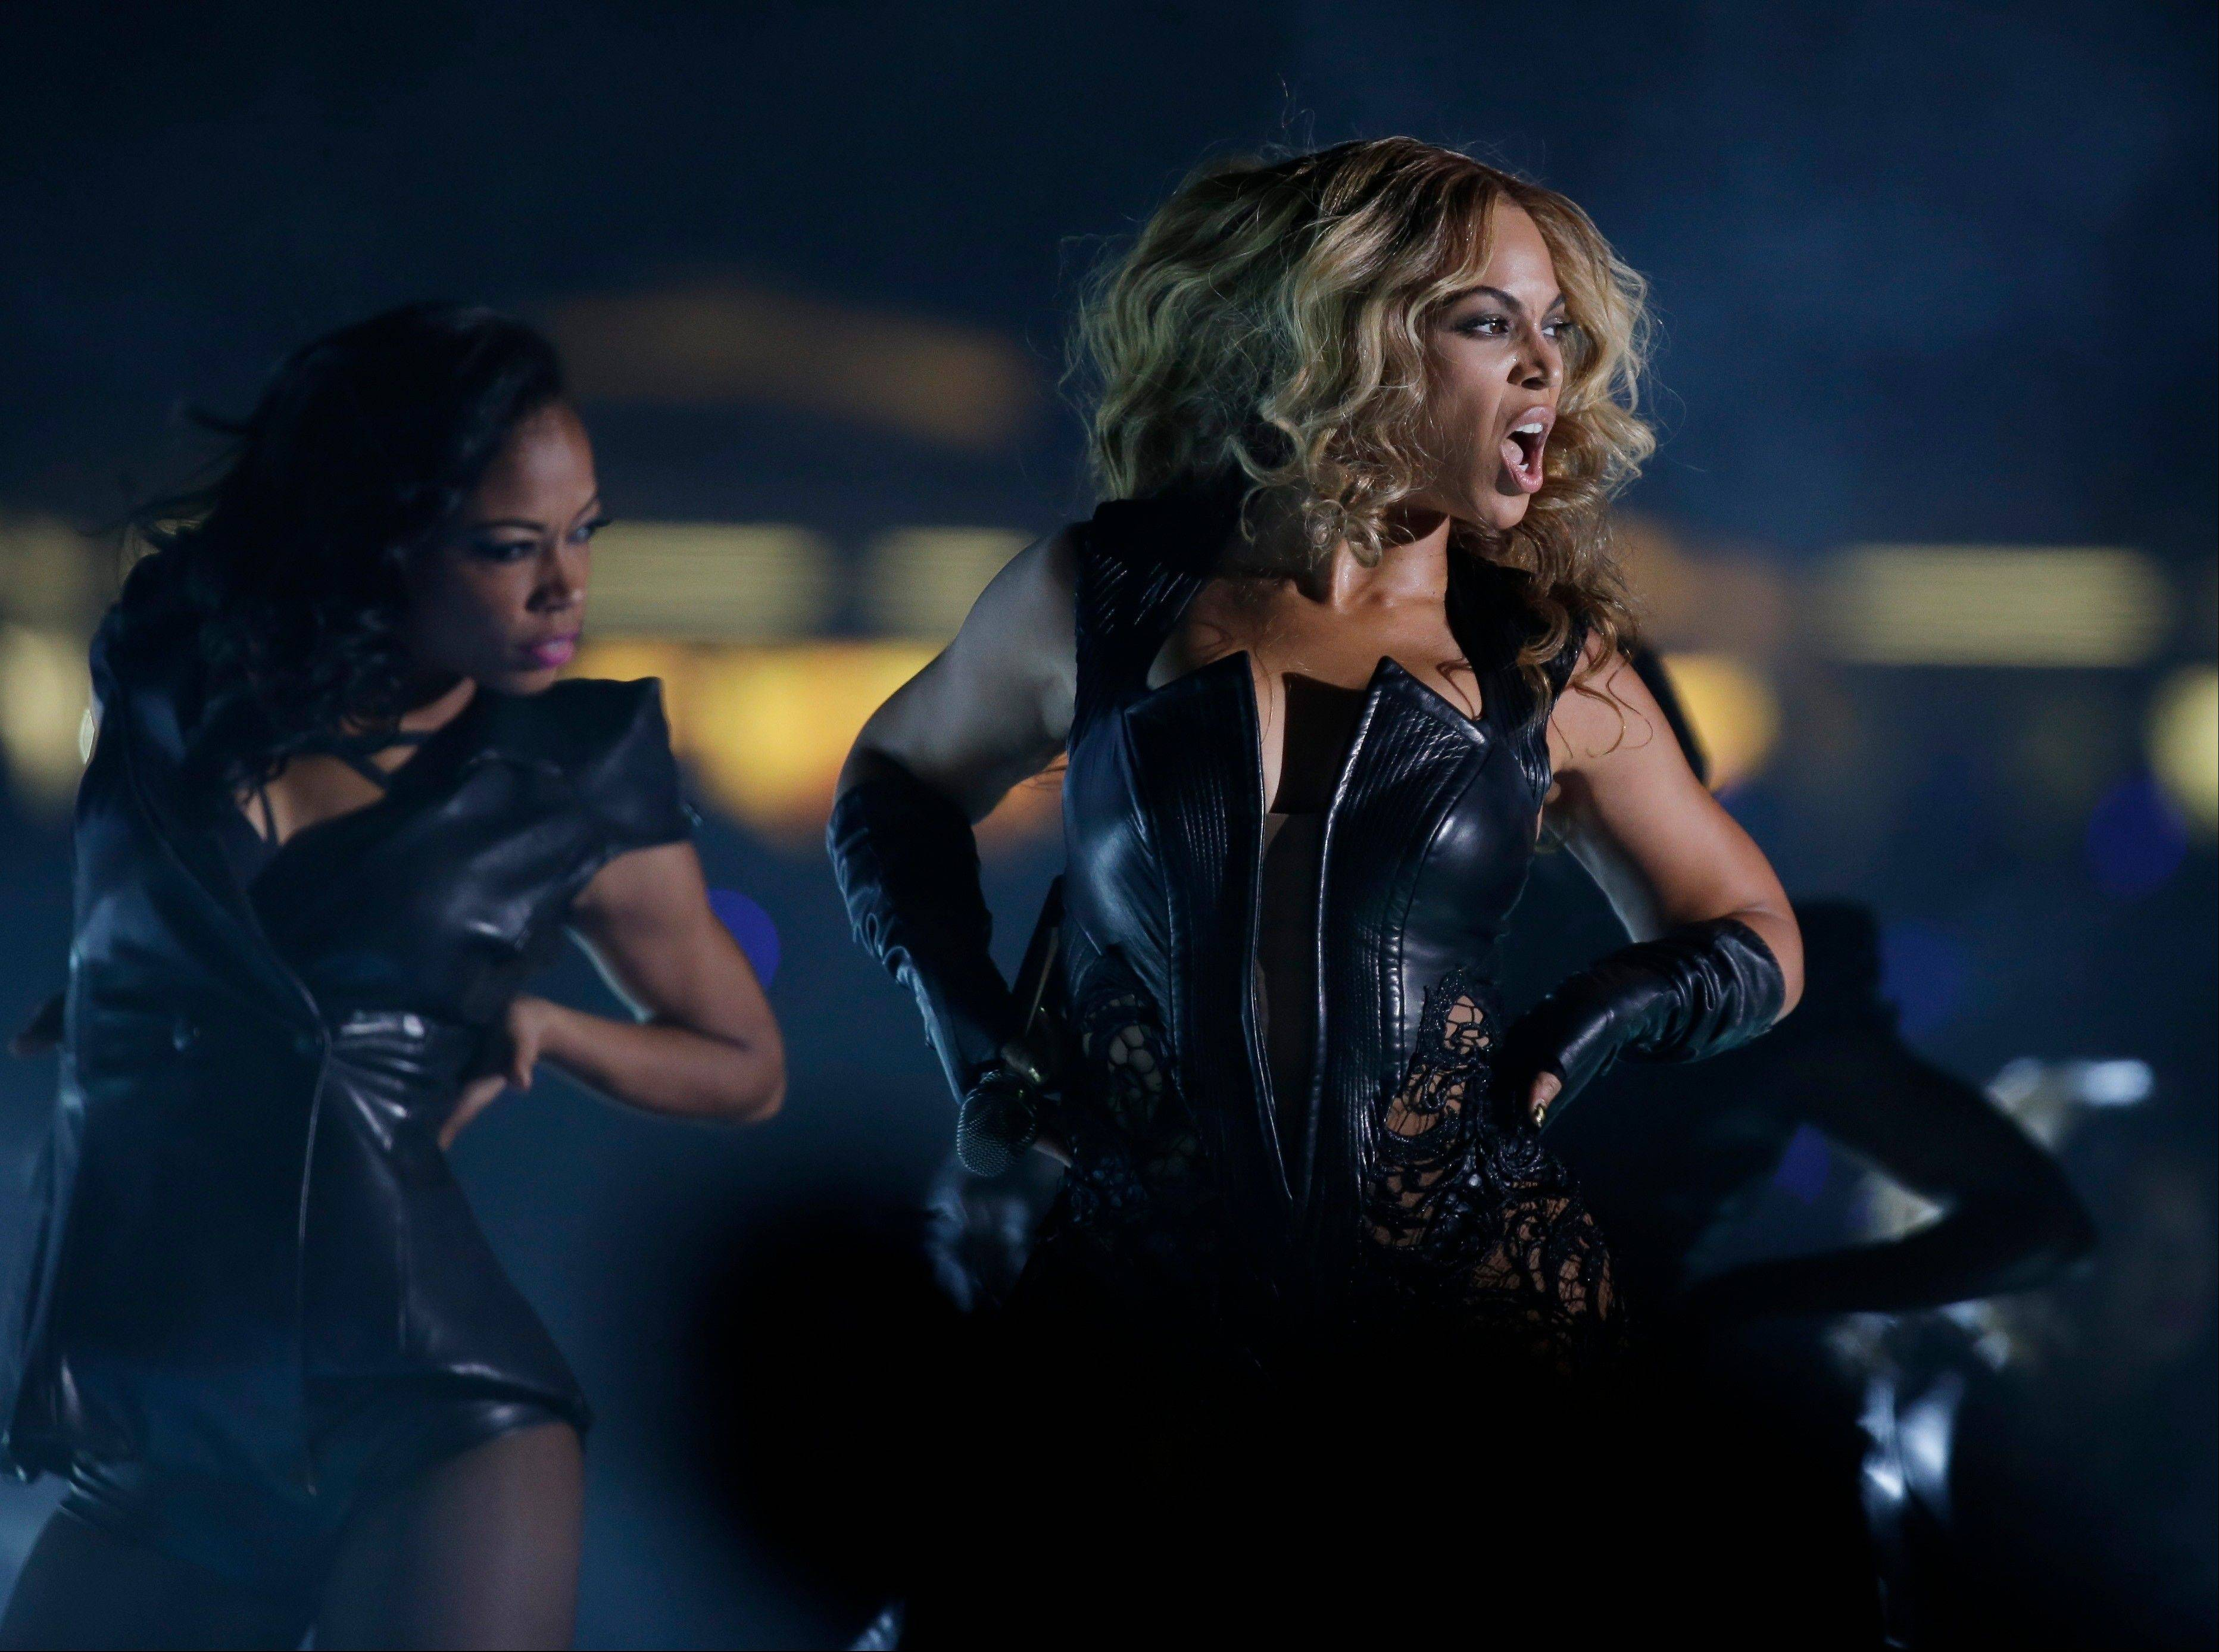 Beyonc� performs during the halftime show of Super Bowl XLVII between the San Francisco 49ers and the Baltimore Ravens on Sunday in New Orleans.